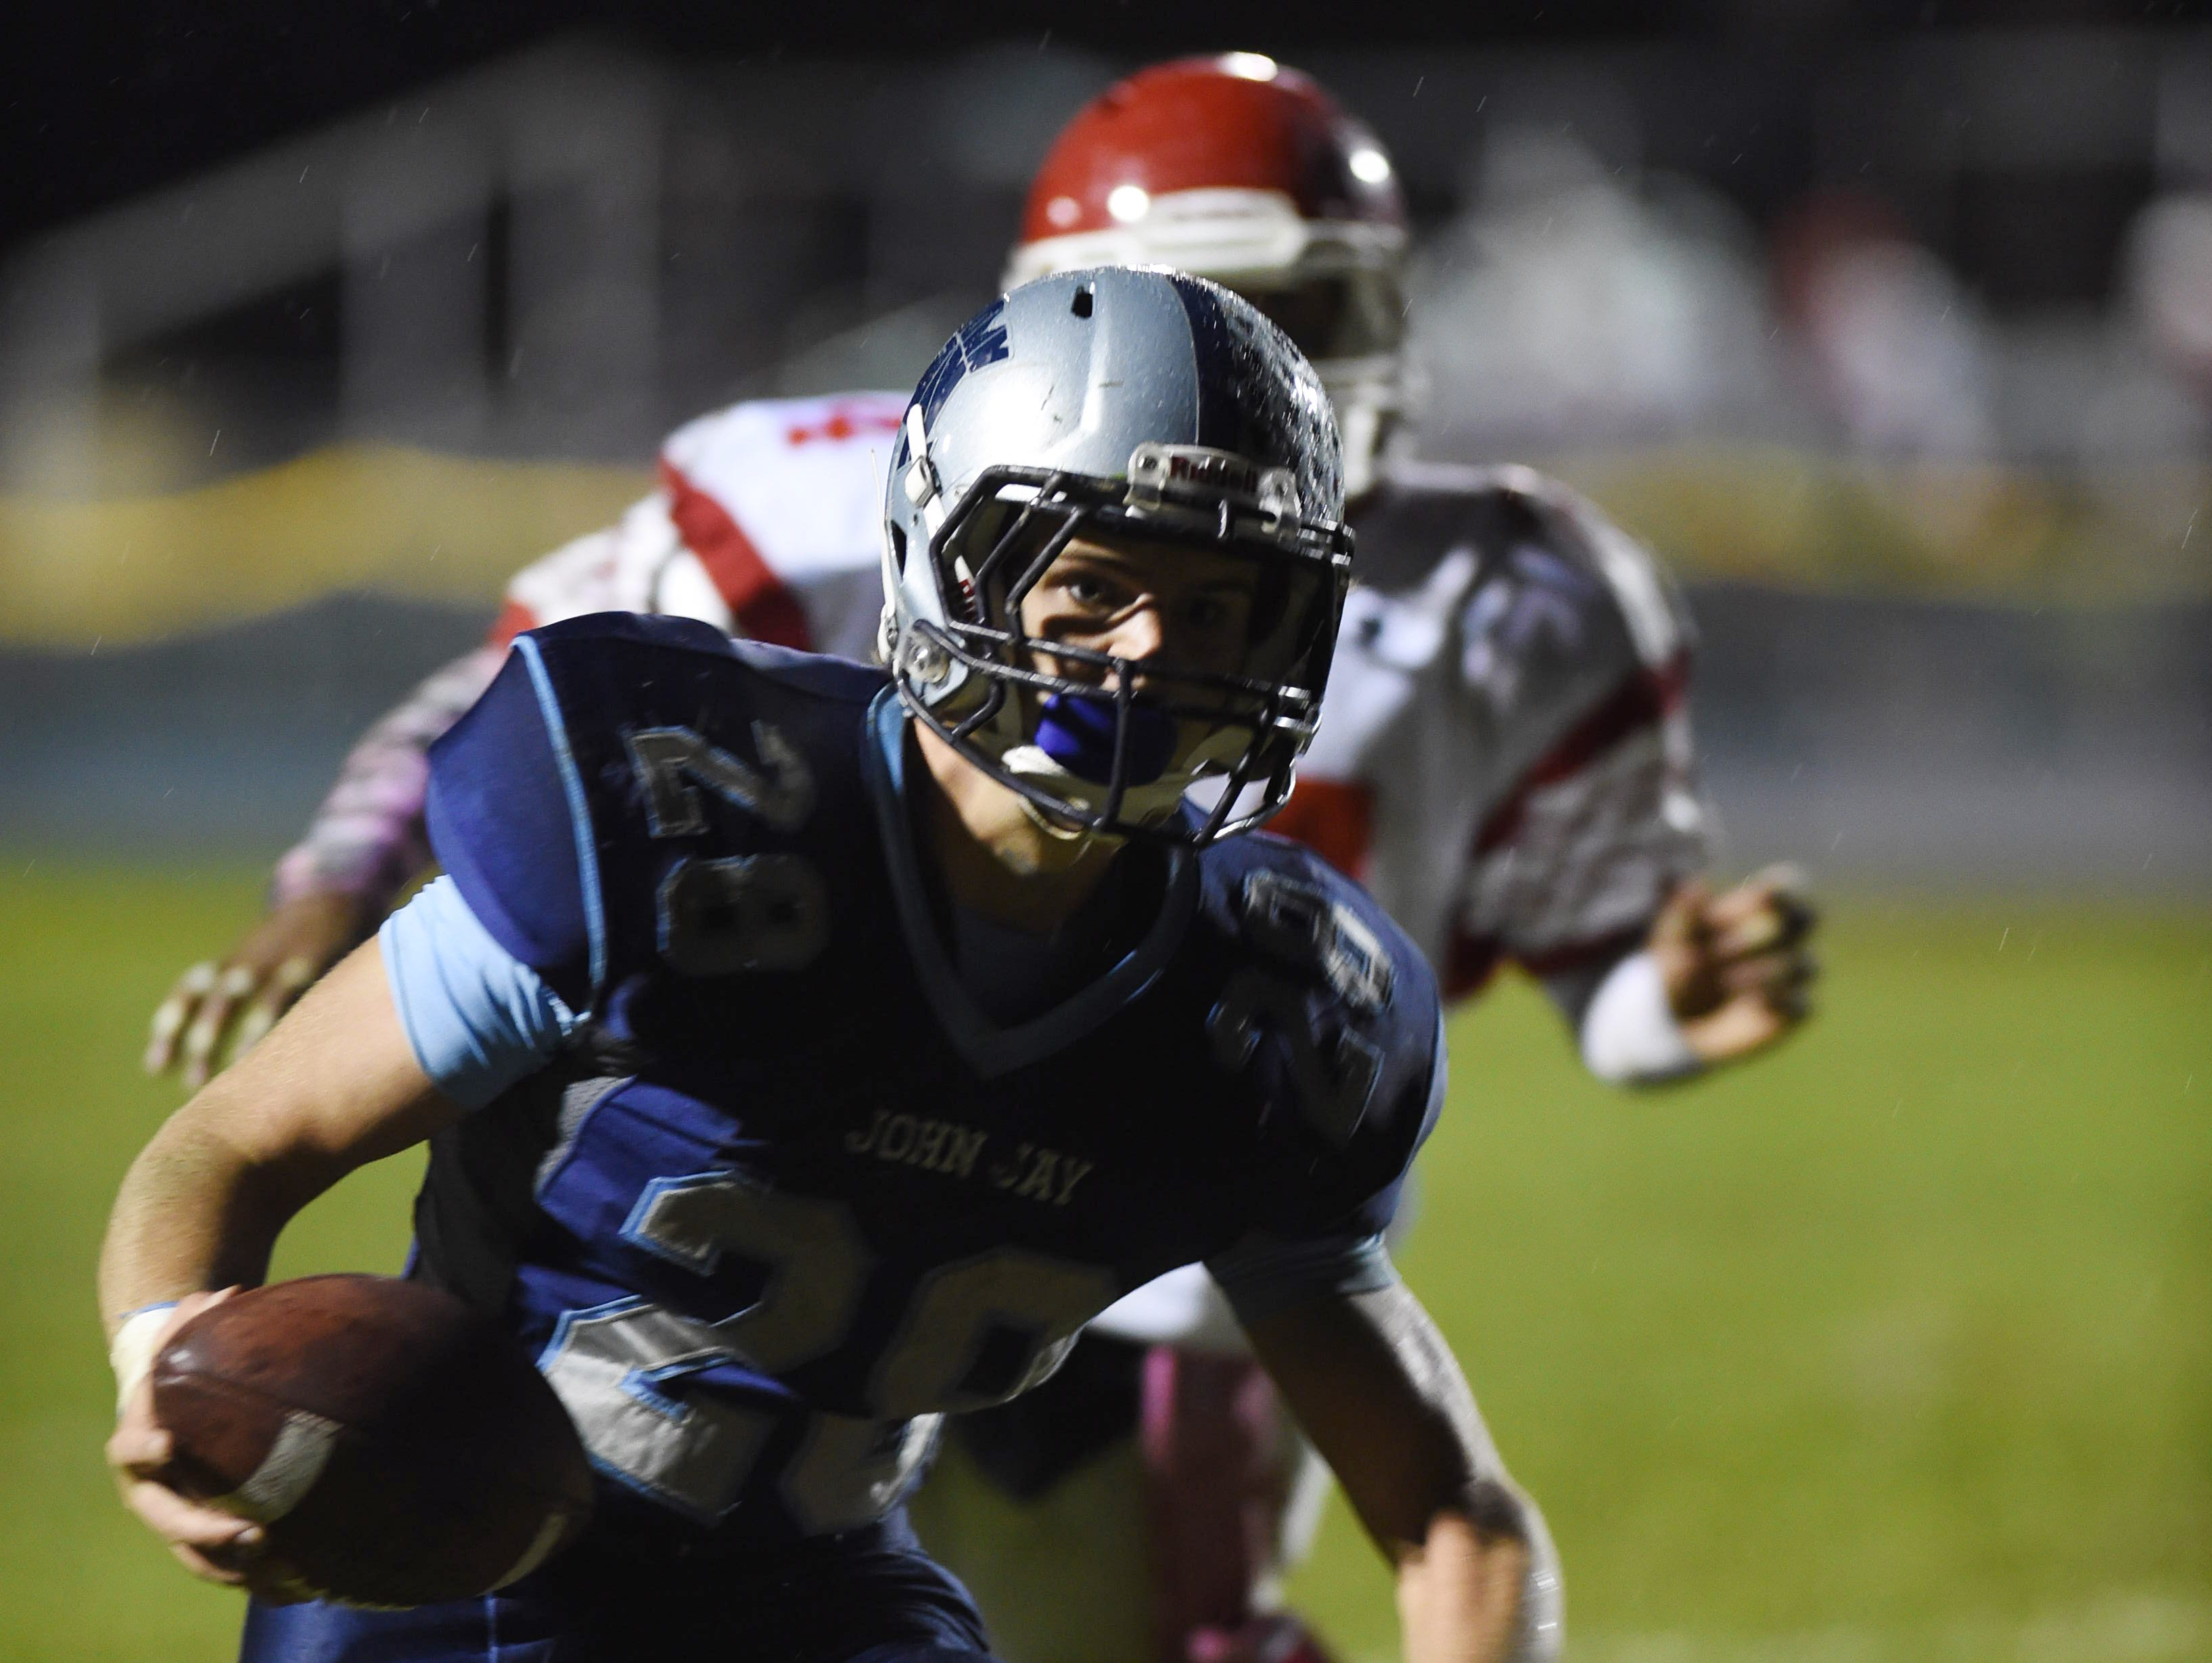 John Jay's Danny Diedrich crosses the goal line for the two point conversion in the third quarter during Friday's home game versus North Rockland.